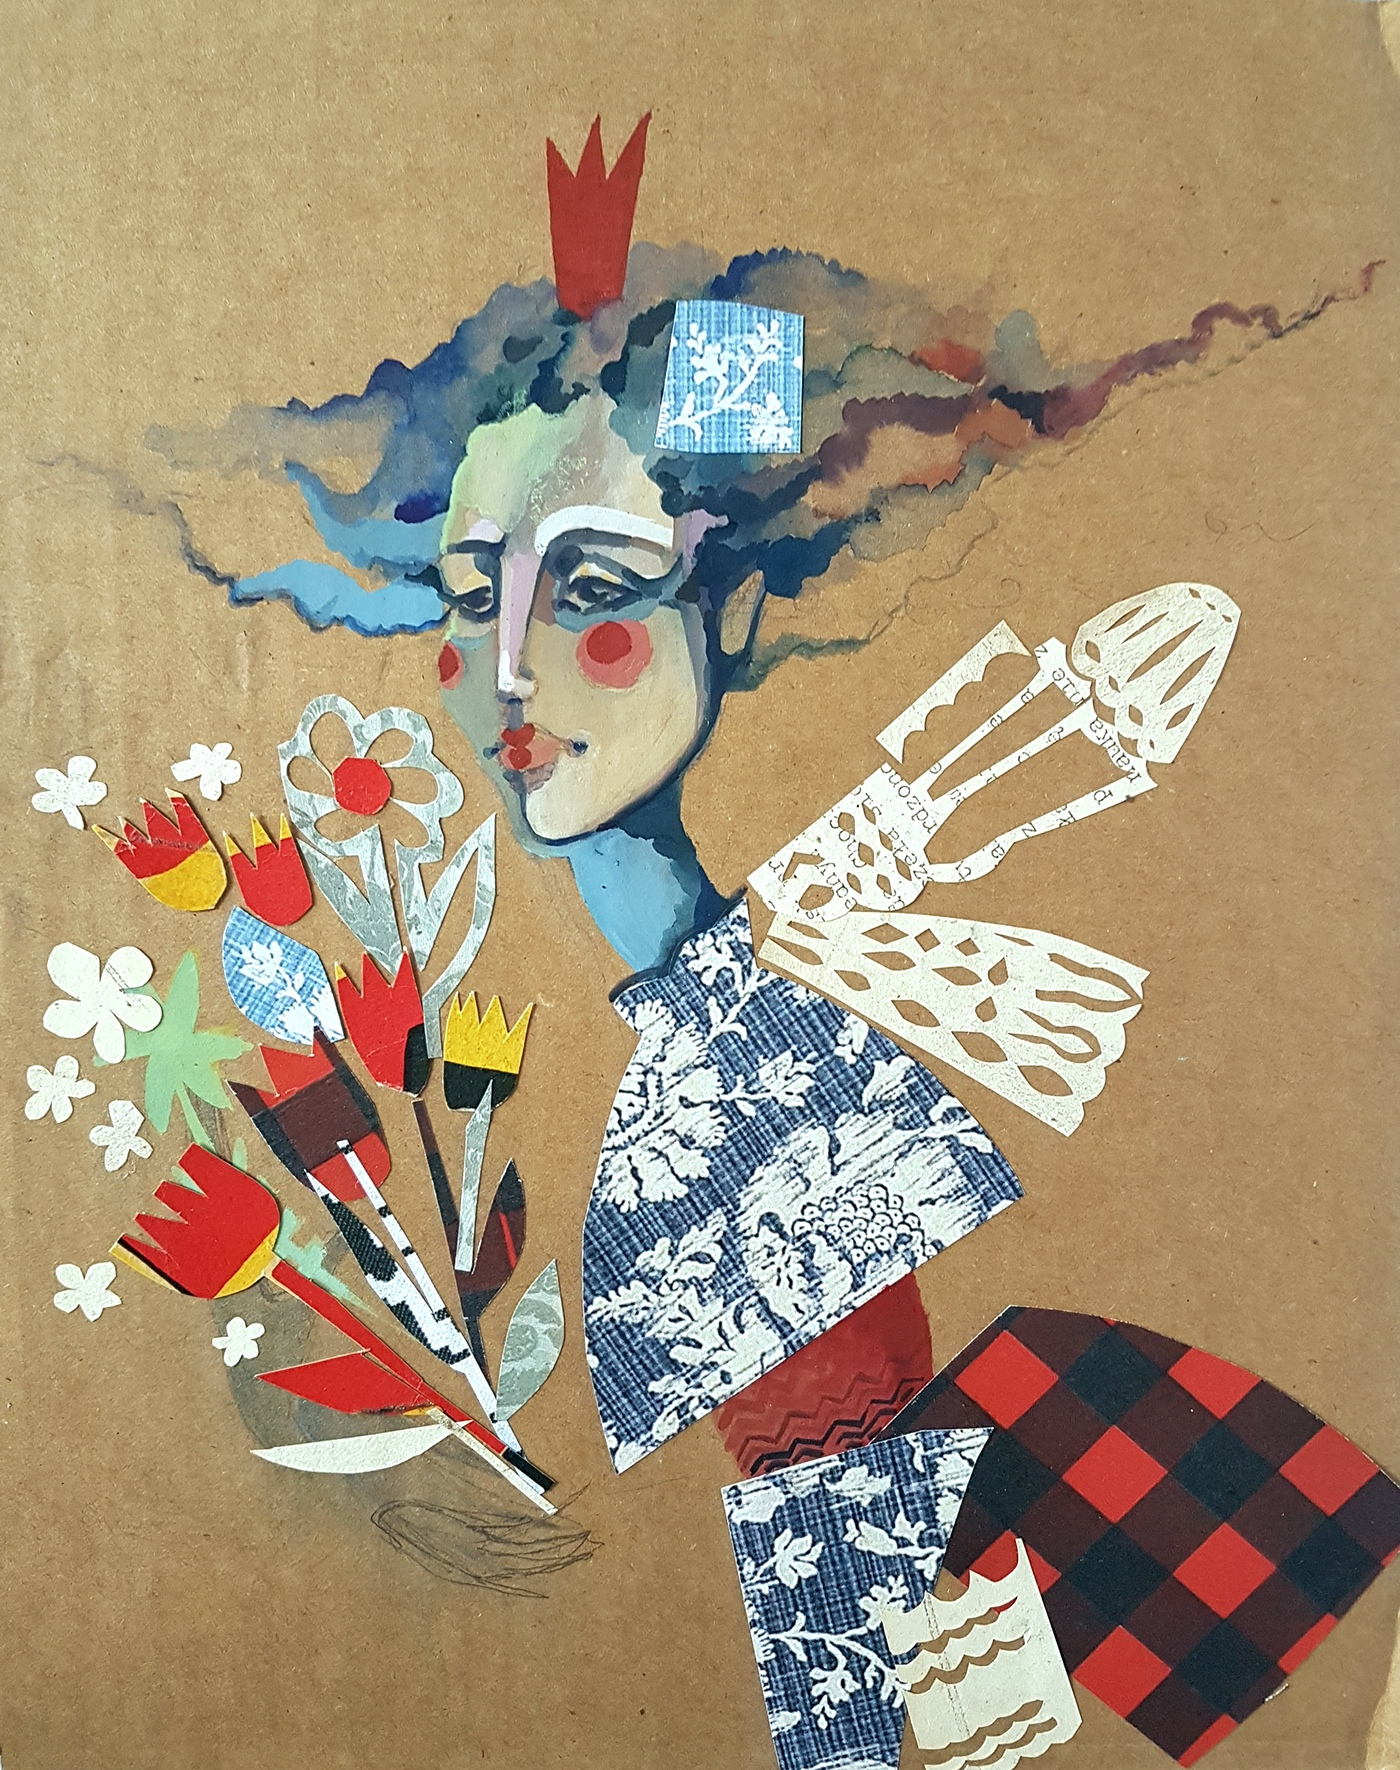 Flowers elf fairy woman musician collage